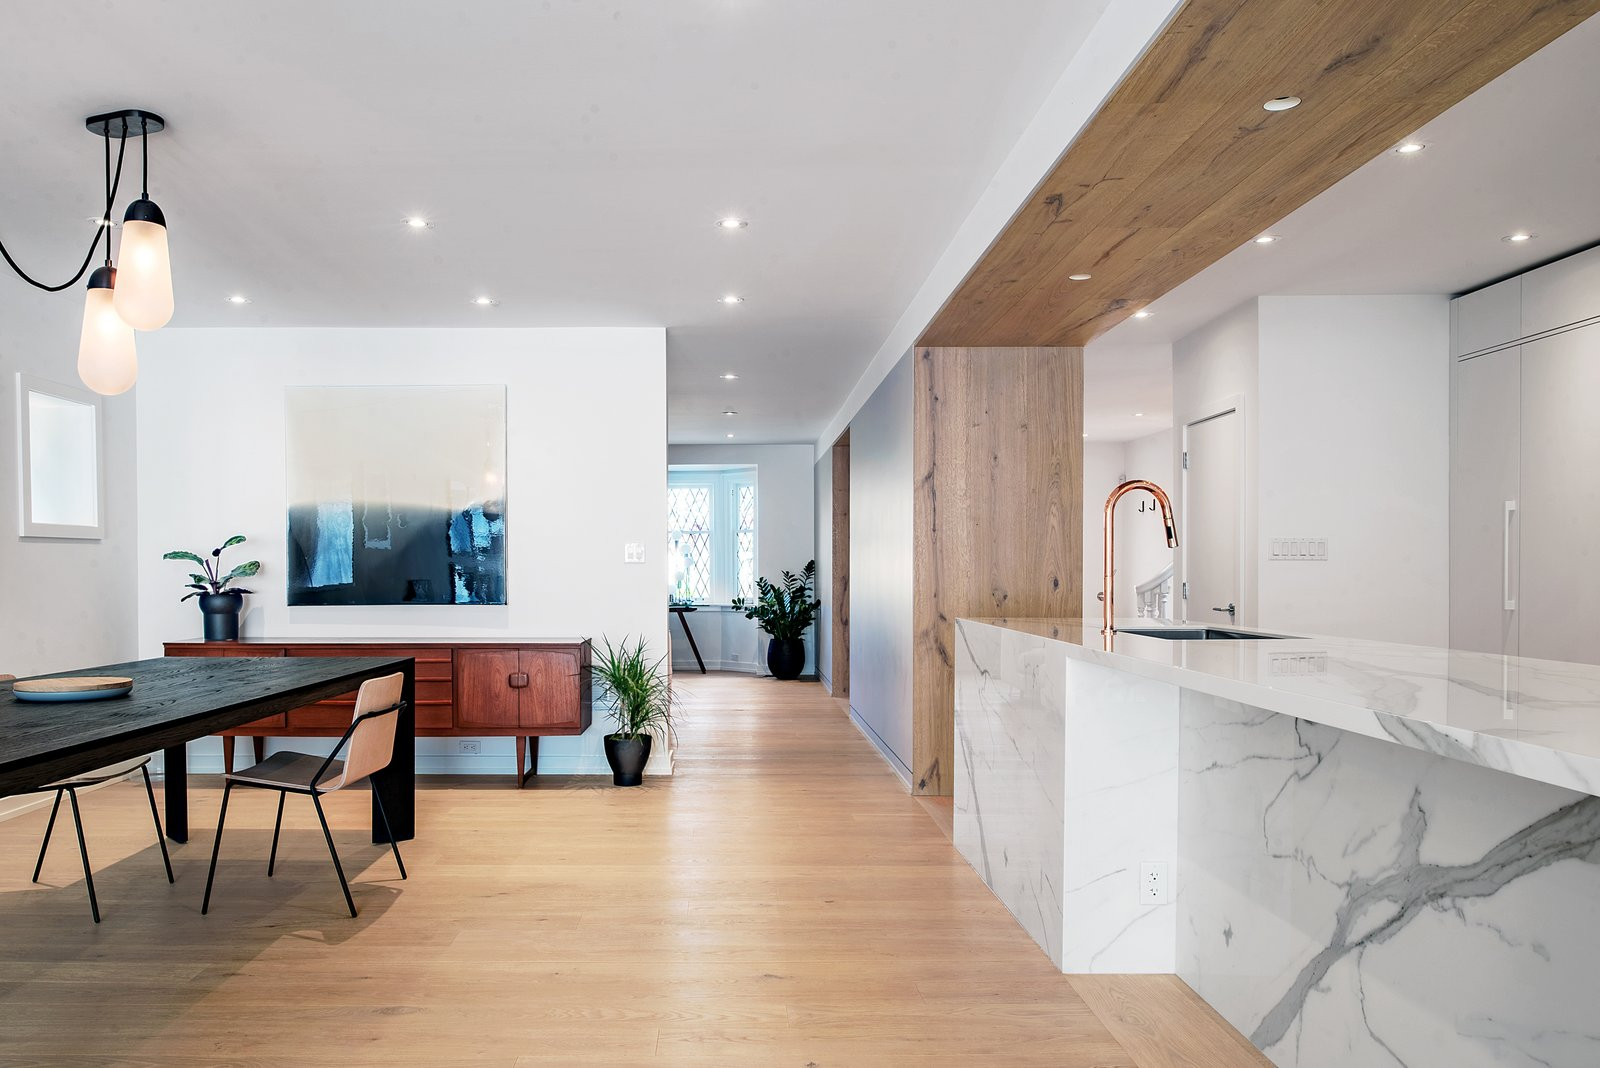 Tagged: Kitchen, Quartzite Counter, Light Hardwood Floor, White Cabinet, Subway Tile Backsplashe, Ceiling Lighting, Recessed Lighting, Undermount Sink, and Refrigerator.  Richview Residence by StudioAC